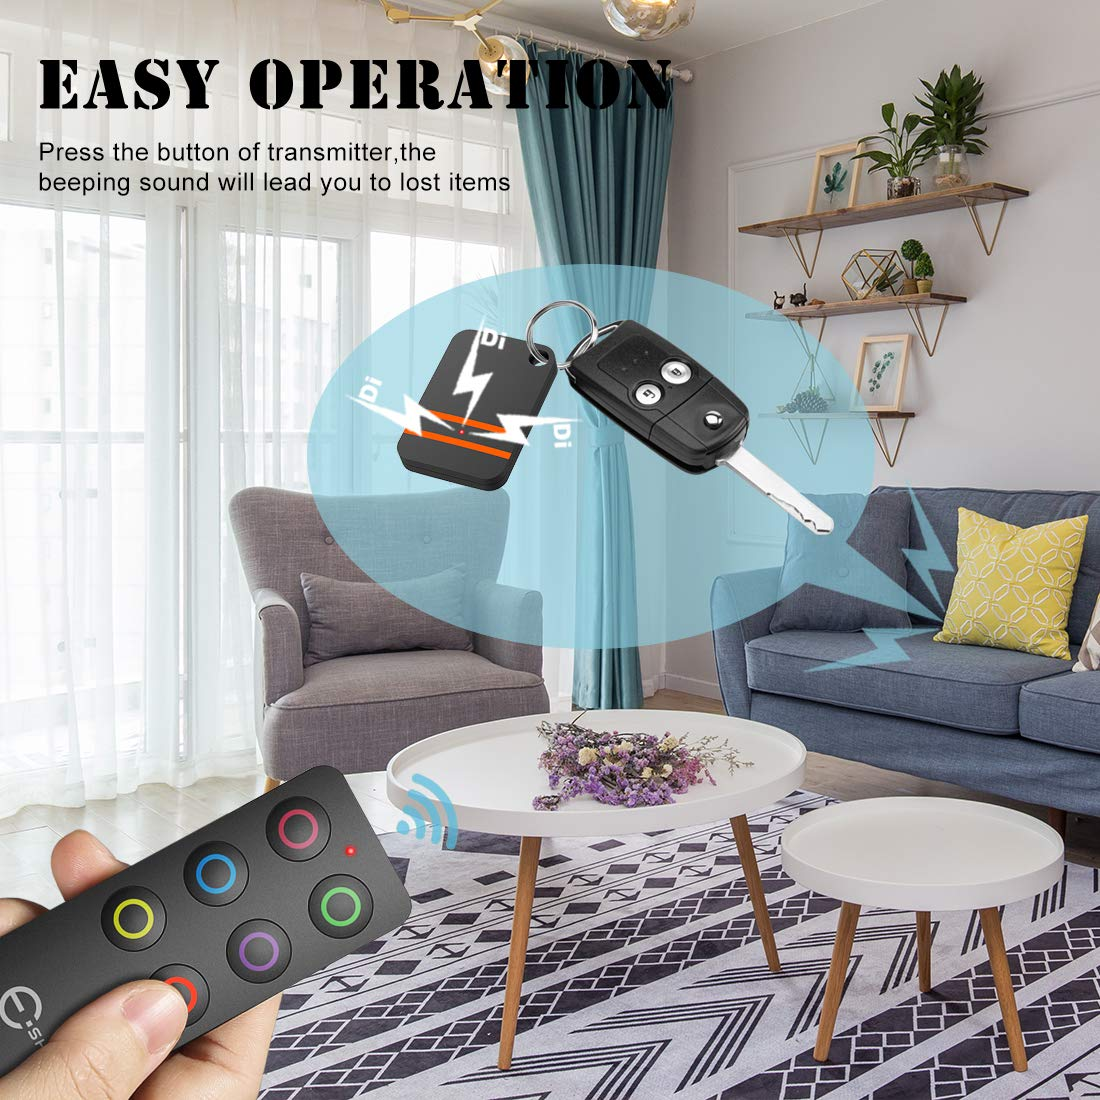 Esky Key Finder Wireless Key RF Locator Wireless RF Item Locator Item Tracker Support Remote Control,1 RF Transmitter and 6 Receivers with Letter Pet Tracker Wallet Tracker